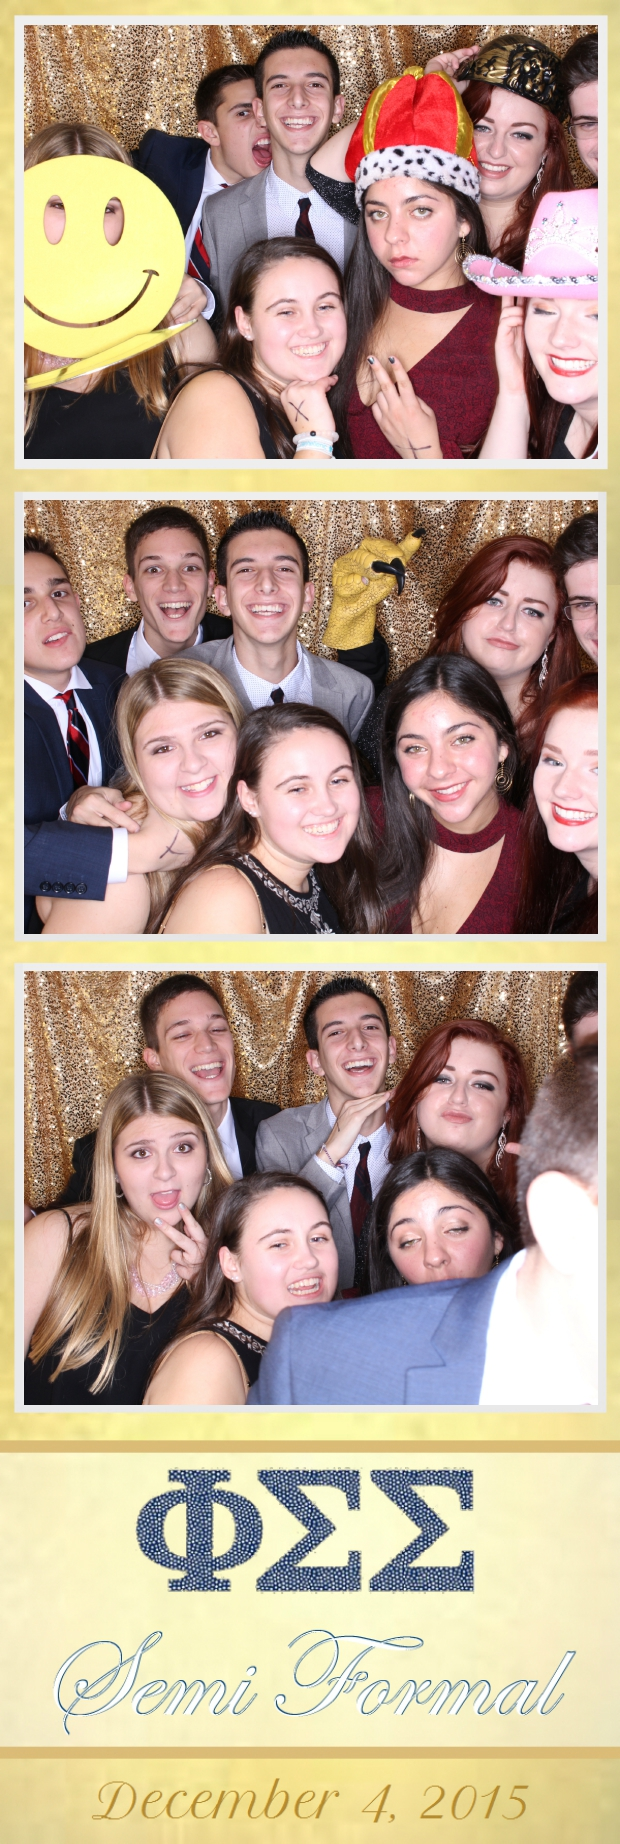 Guest House Events Photo Booth Phi Sigma Sigma Semi Formal (36).jpg